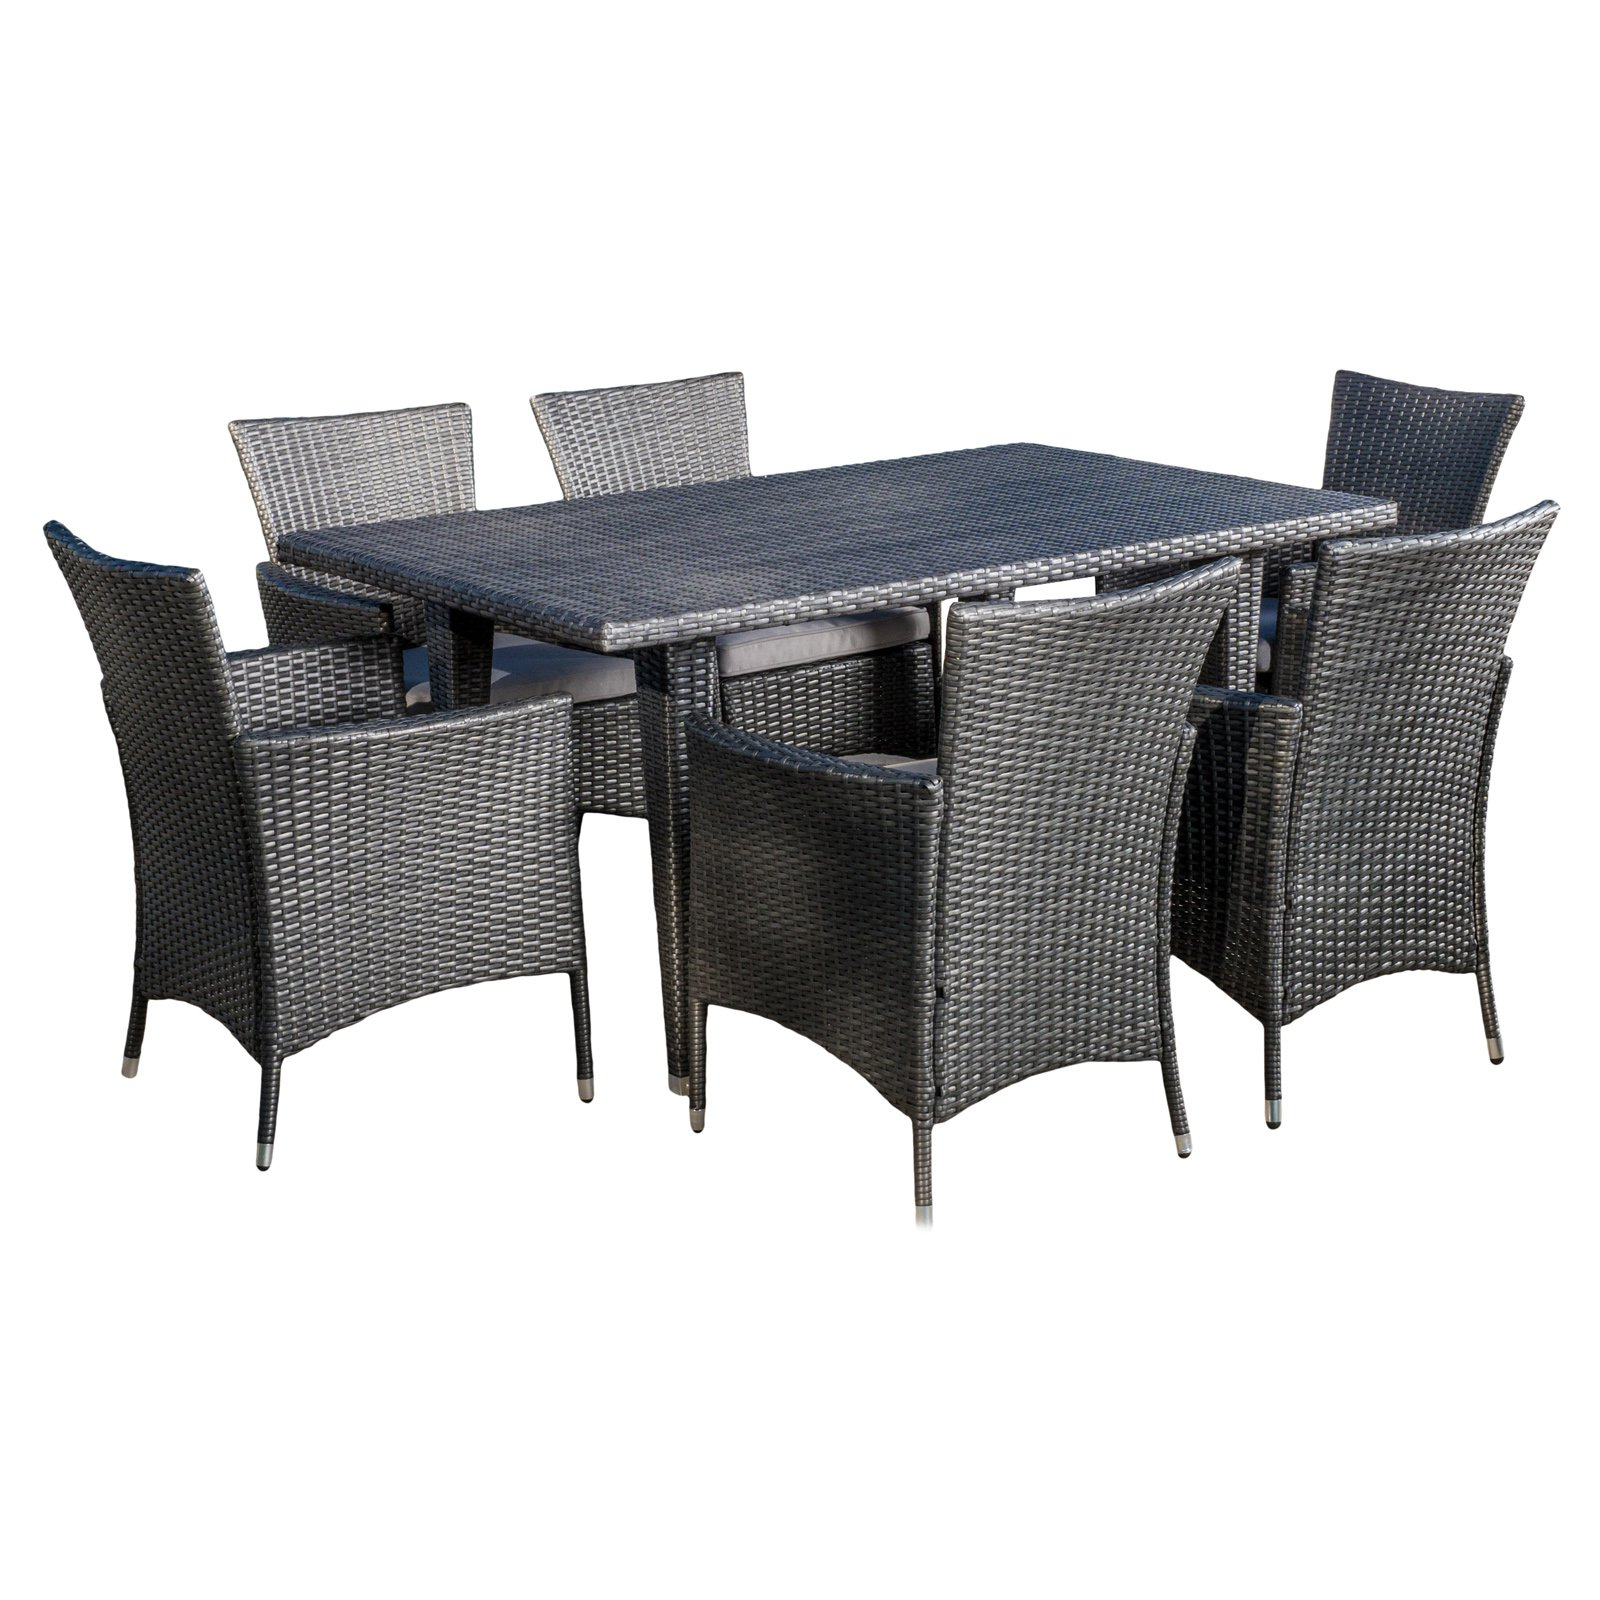 Isabel Wicker 7 Piece Rectangular Patio Dining Set with Cushion